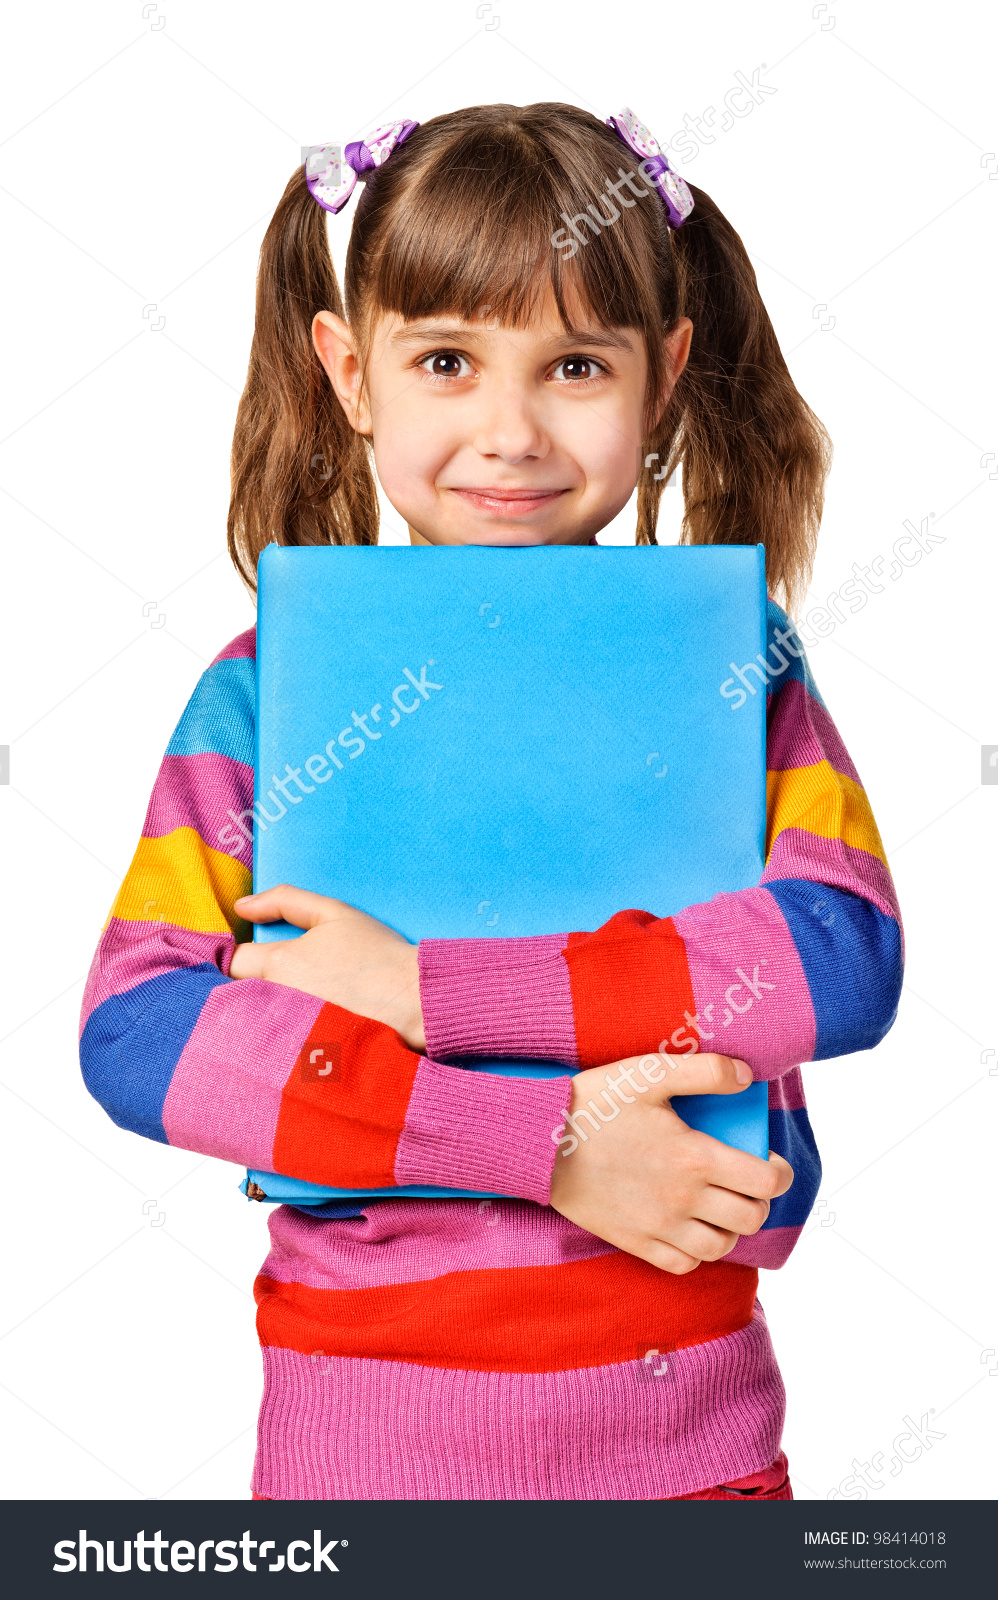 A girl holding a book image royalty free library Little Girl Holding Big Book Isolated Stock Photo 98414018 ... image royalty free library